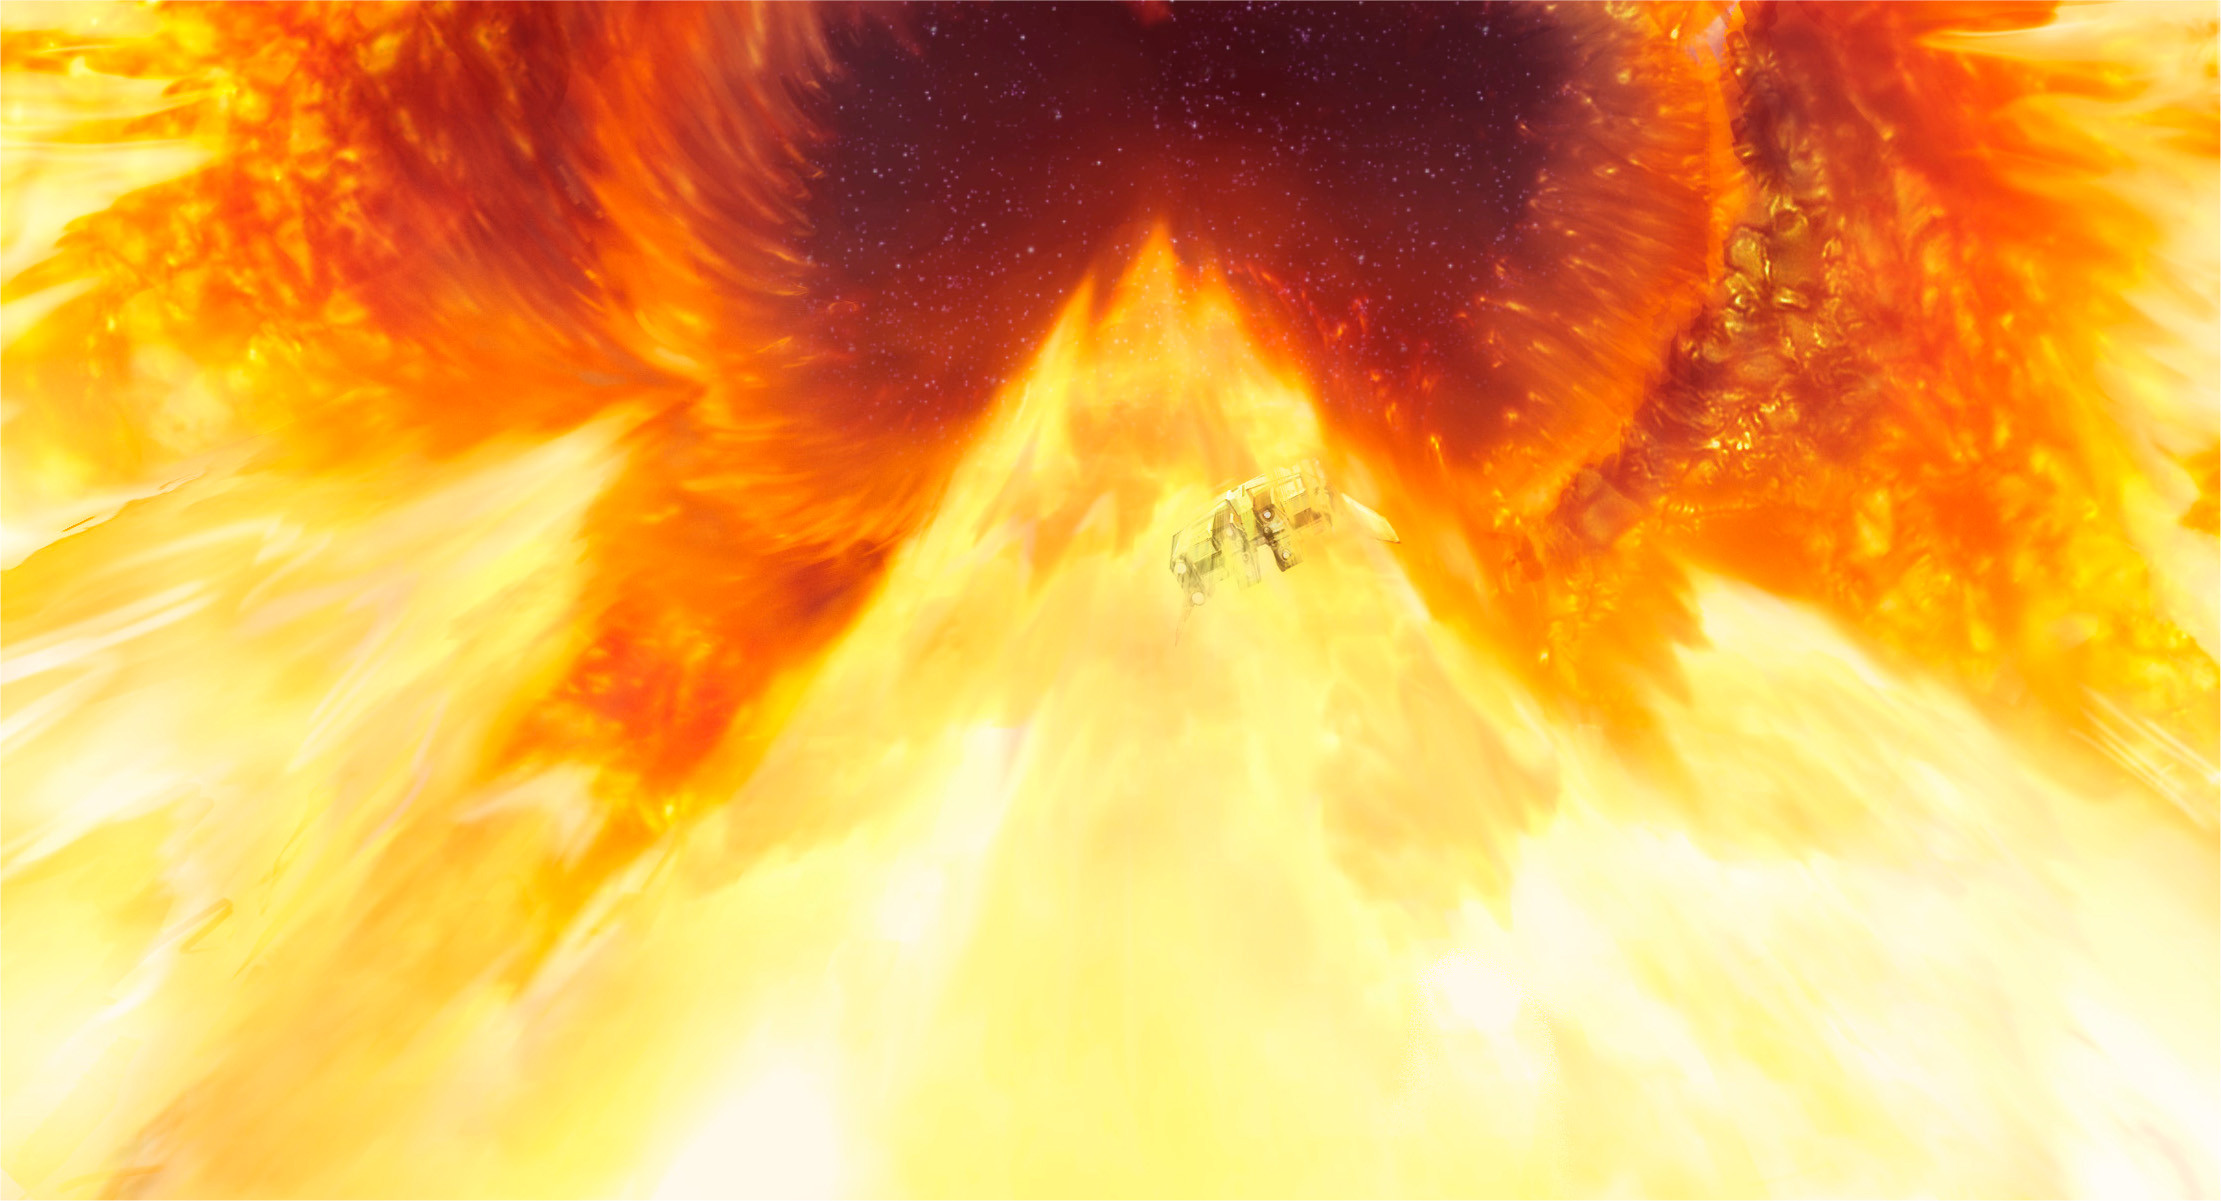 --hurling our ship up through the burning sky surfing a pillar of liquid flame, into the darkness of space.